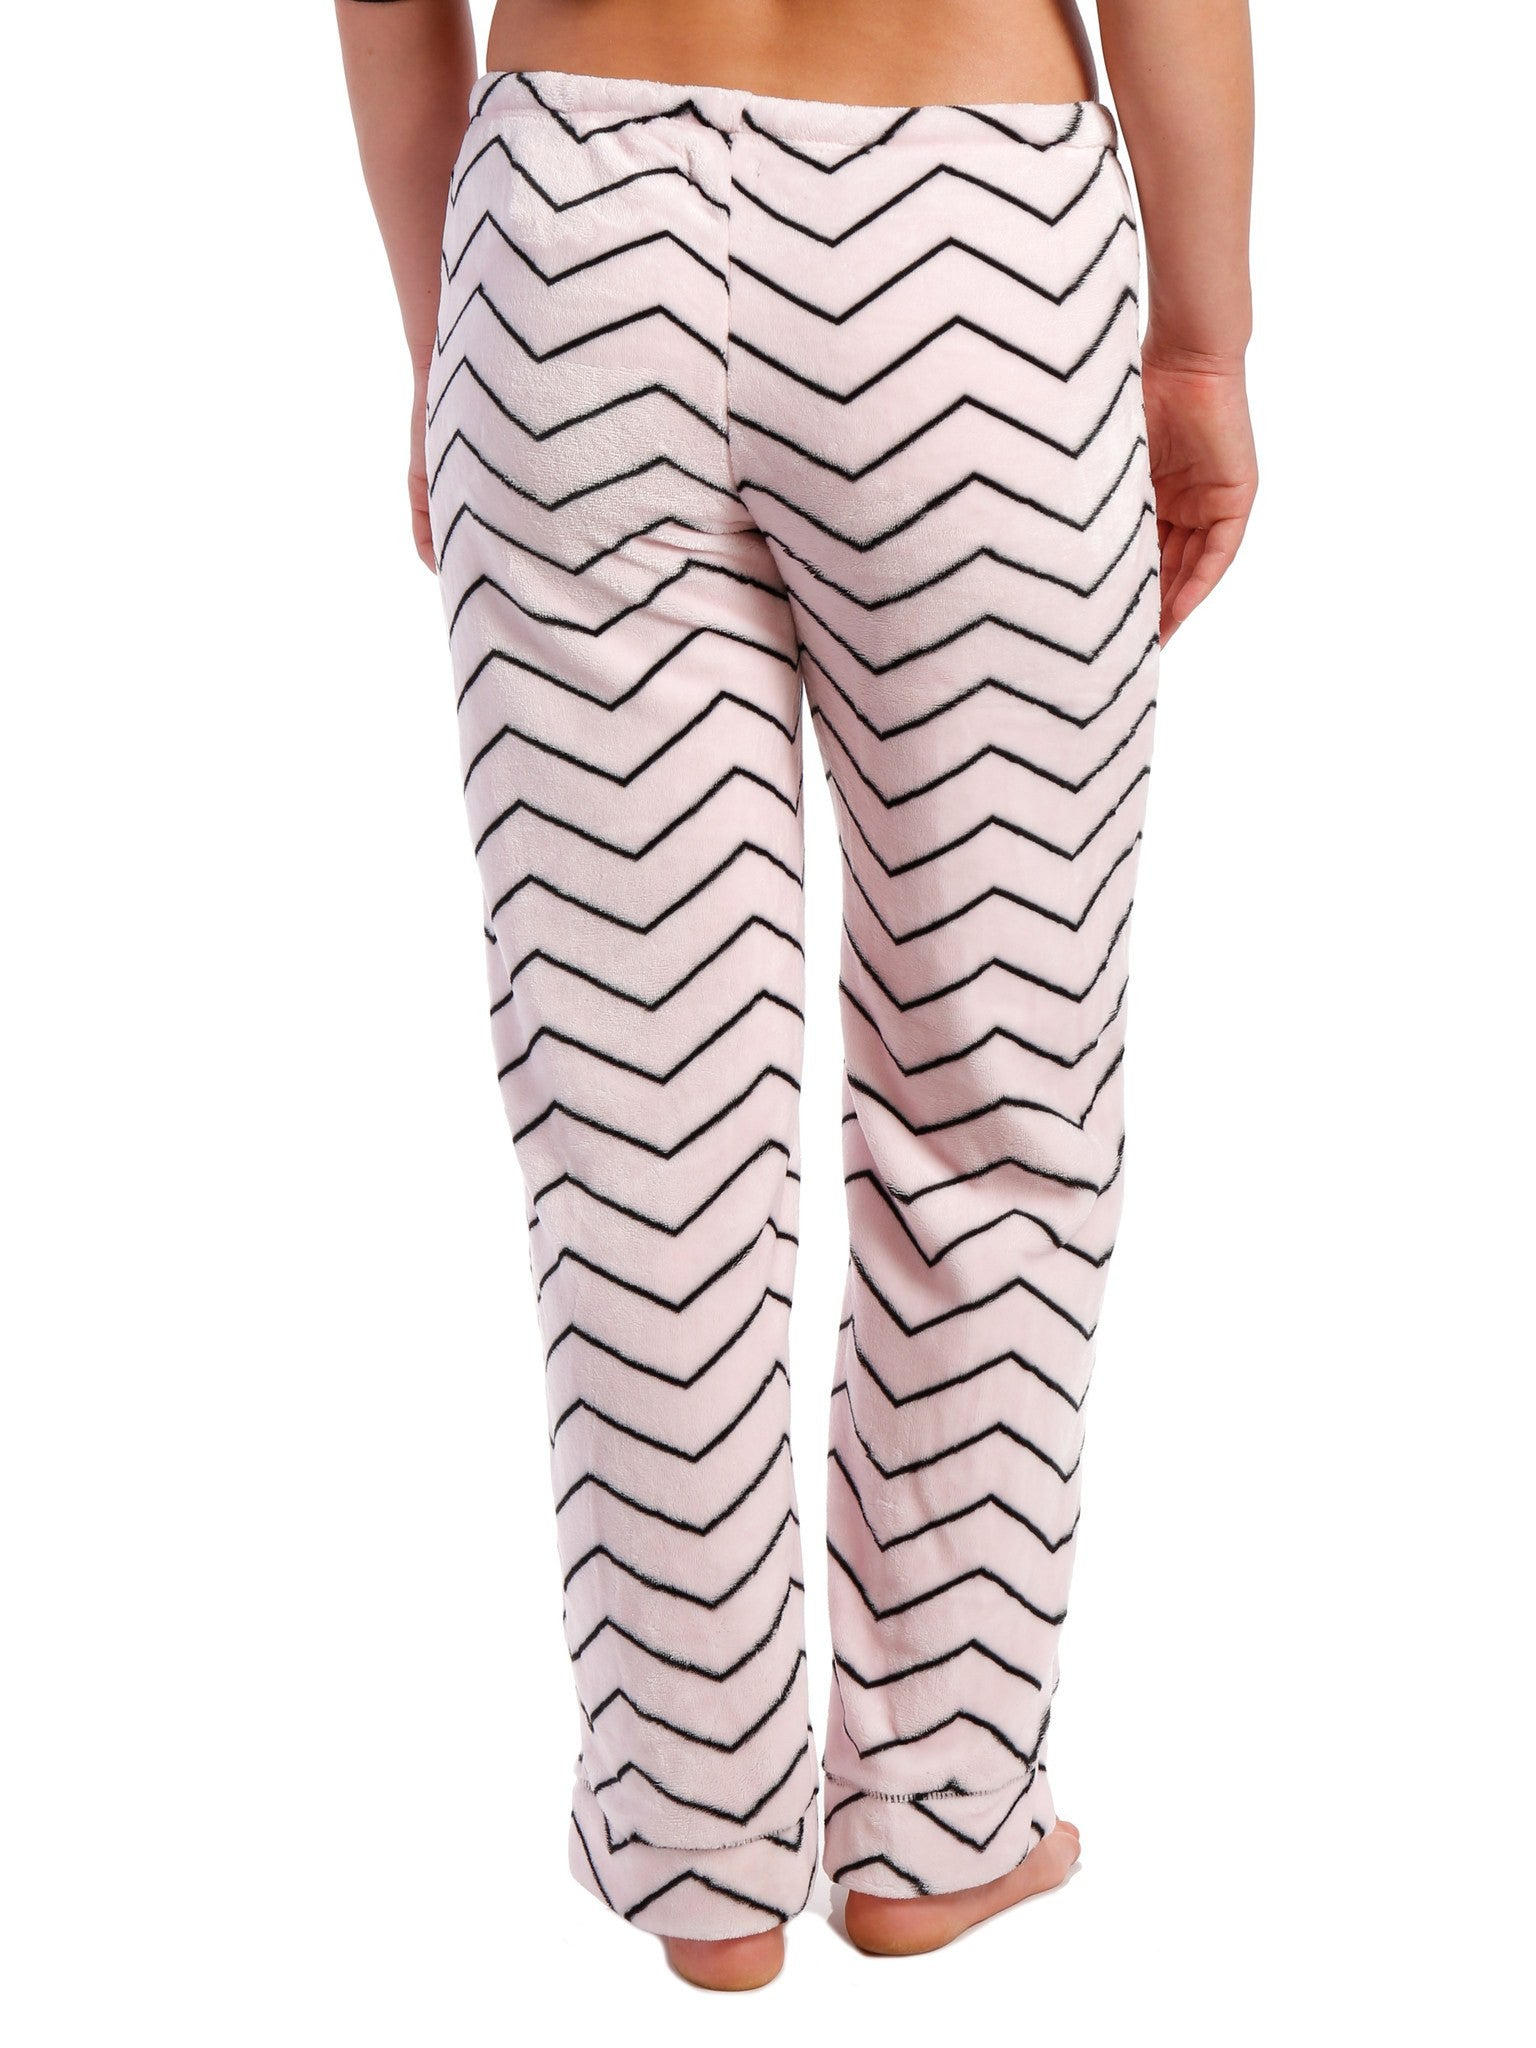 Chevron - Pink/Black